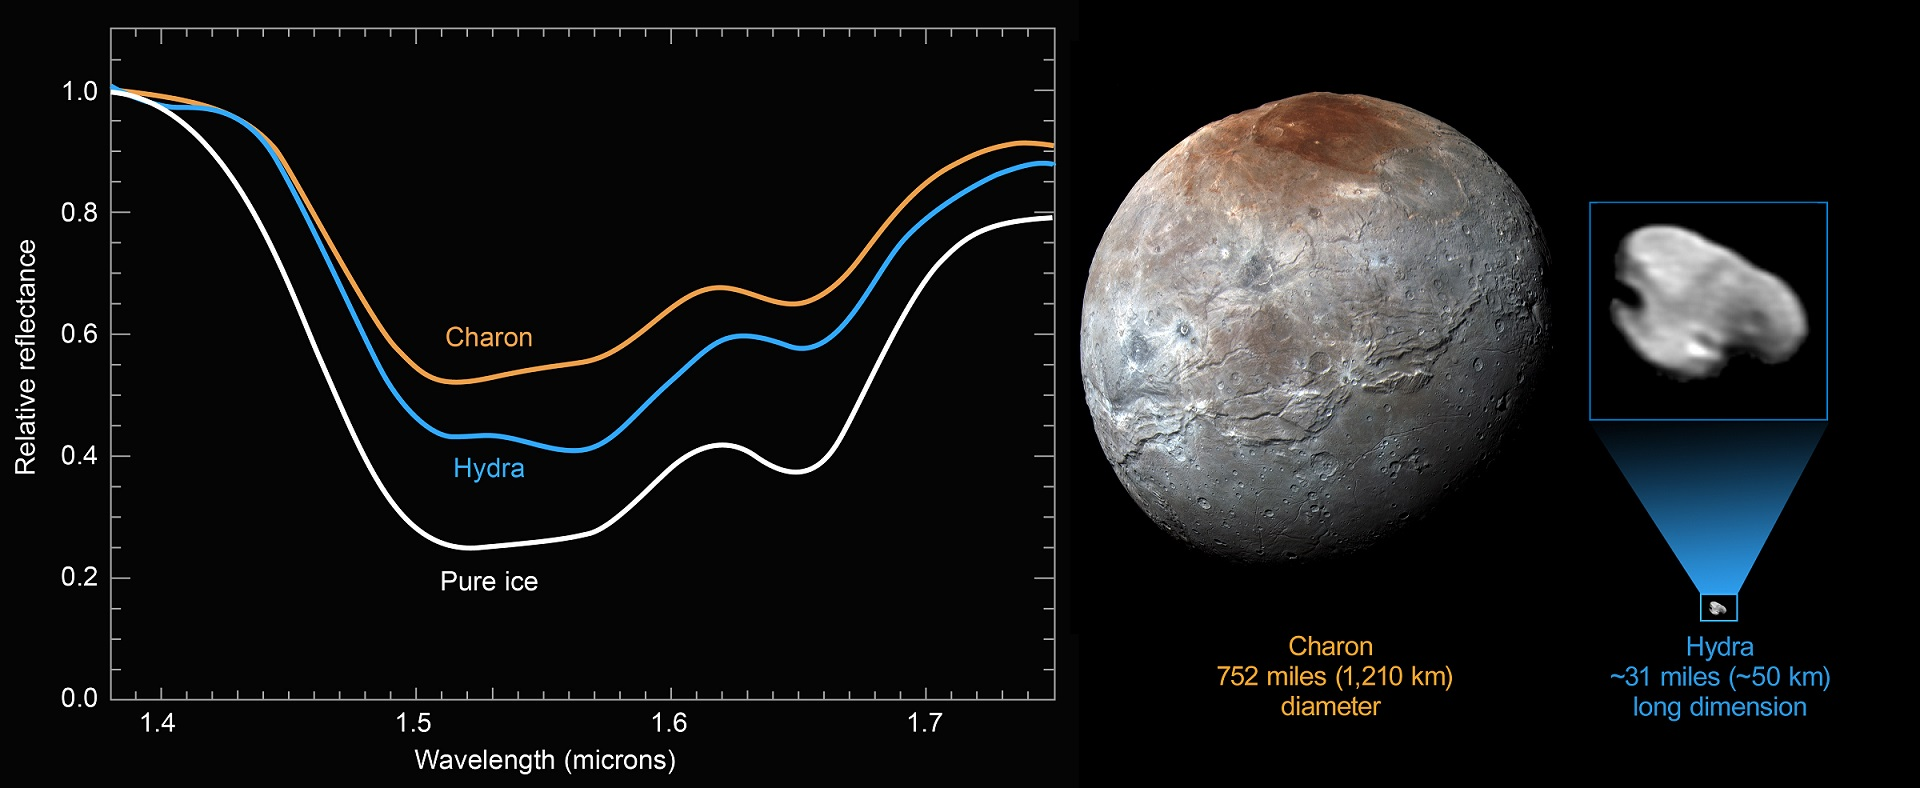 Hydra Moon: Nearly Pure Water Ice Found On Pluto's Moon Hydra